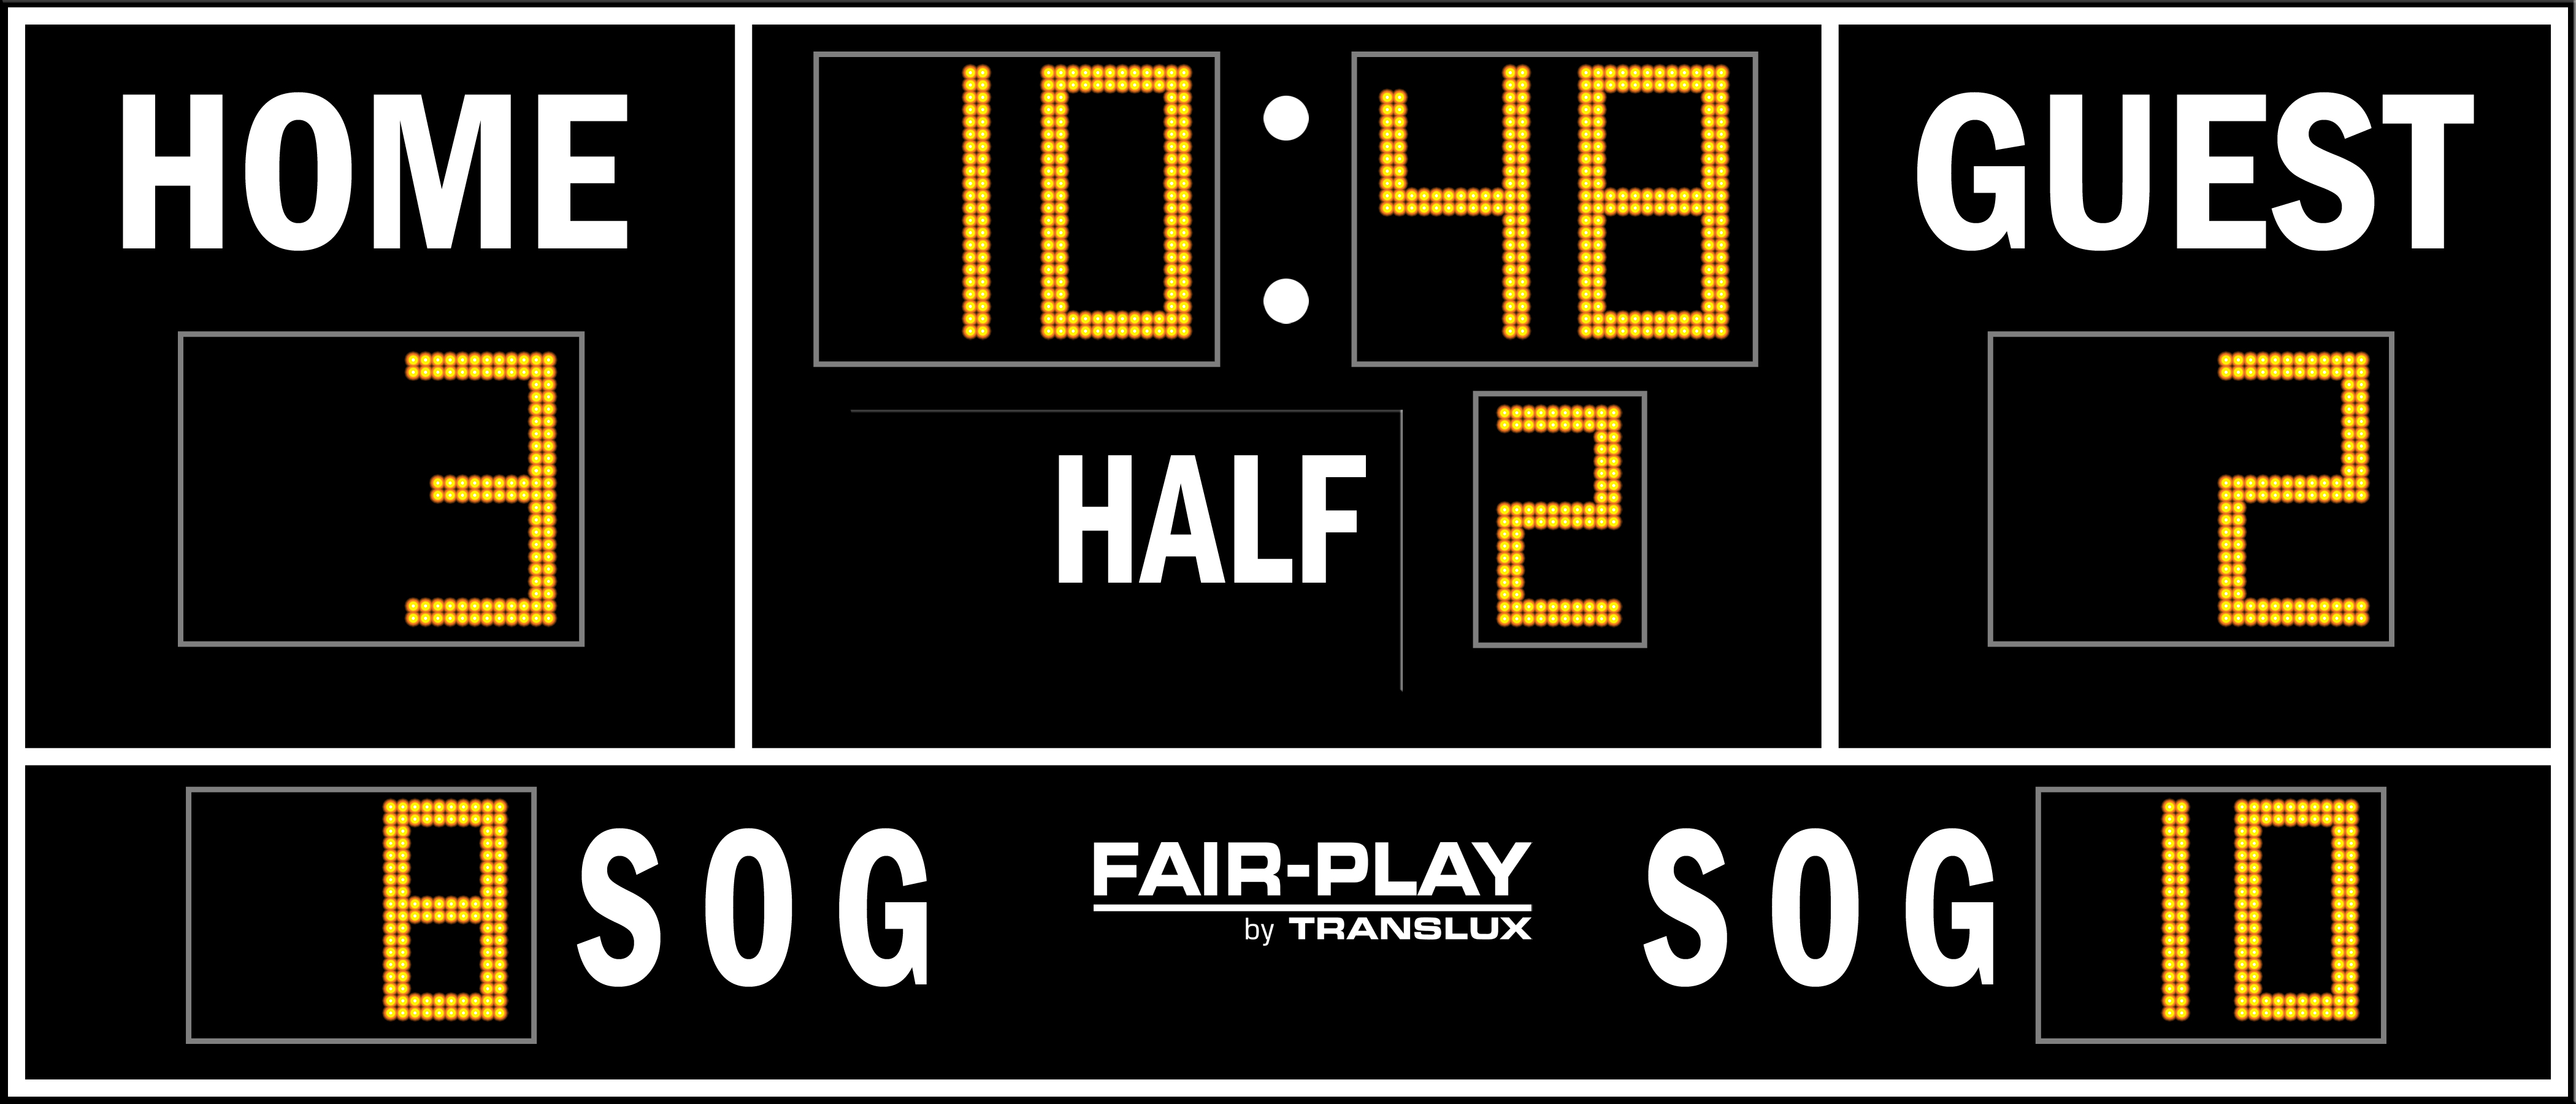 Fair-Play SC-8114-2 Soccer Scoreboard (6′ x 14′)